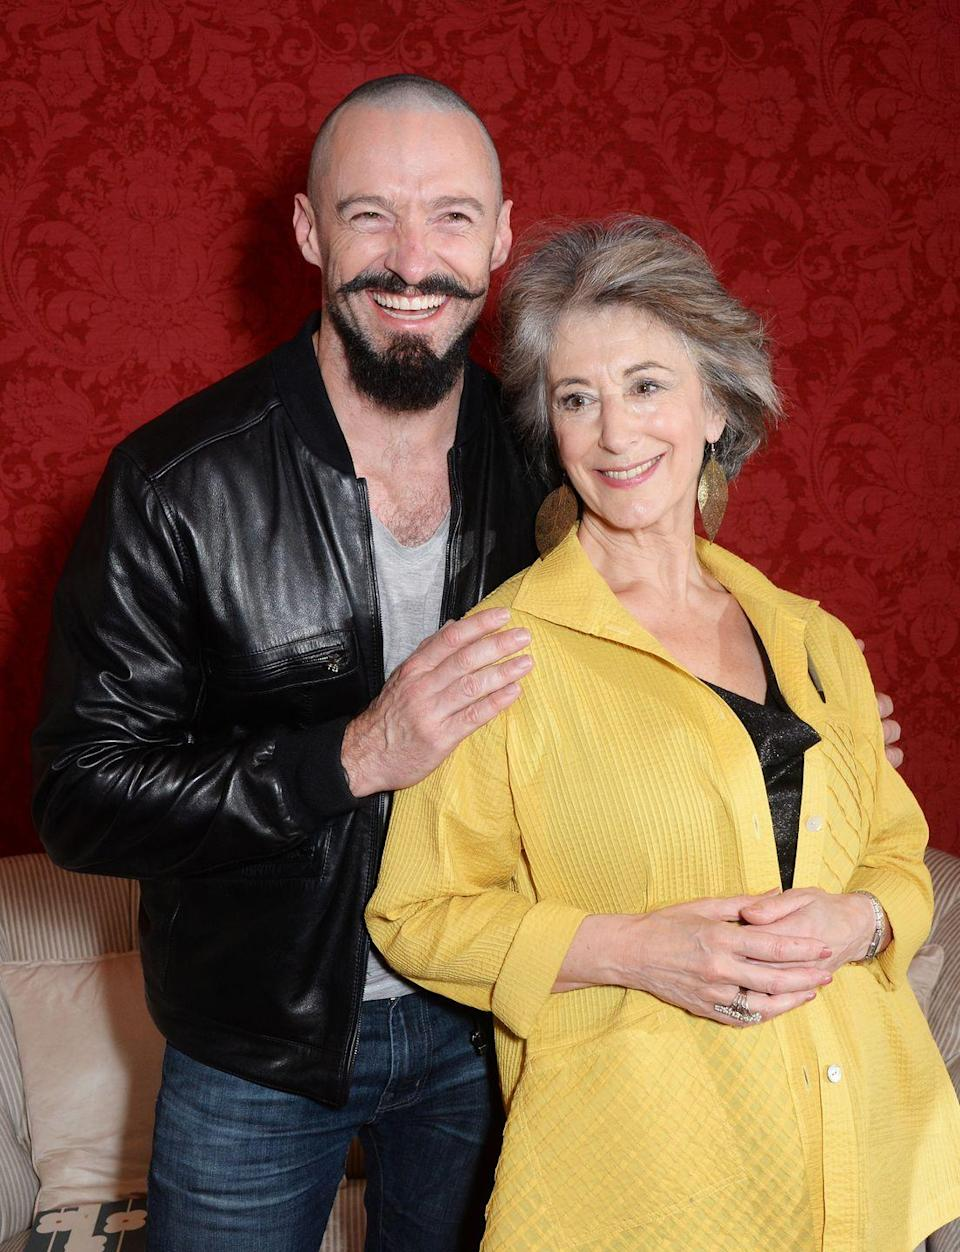 <p>When Hugh Jackman goes for a role, he really <em>goes </em>for it. The Australian actor paired a shaved head with an elaborate goatee for his role as Blackbeard in <em>Pan</em>. </p>